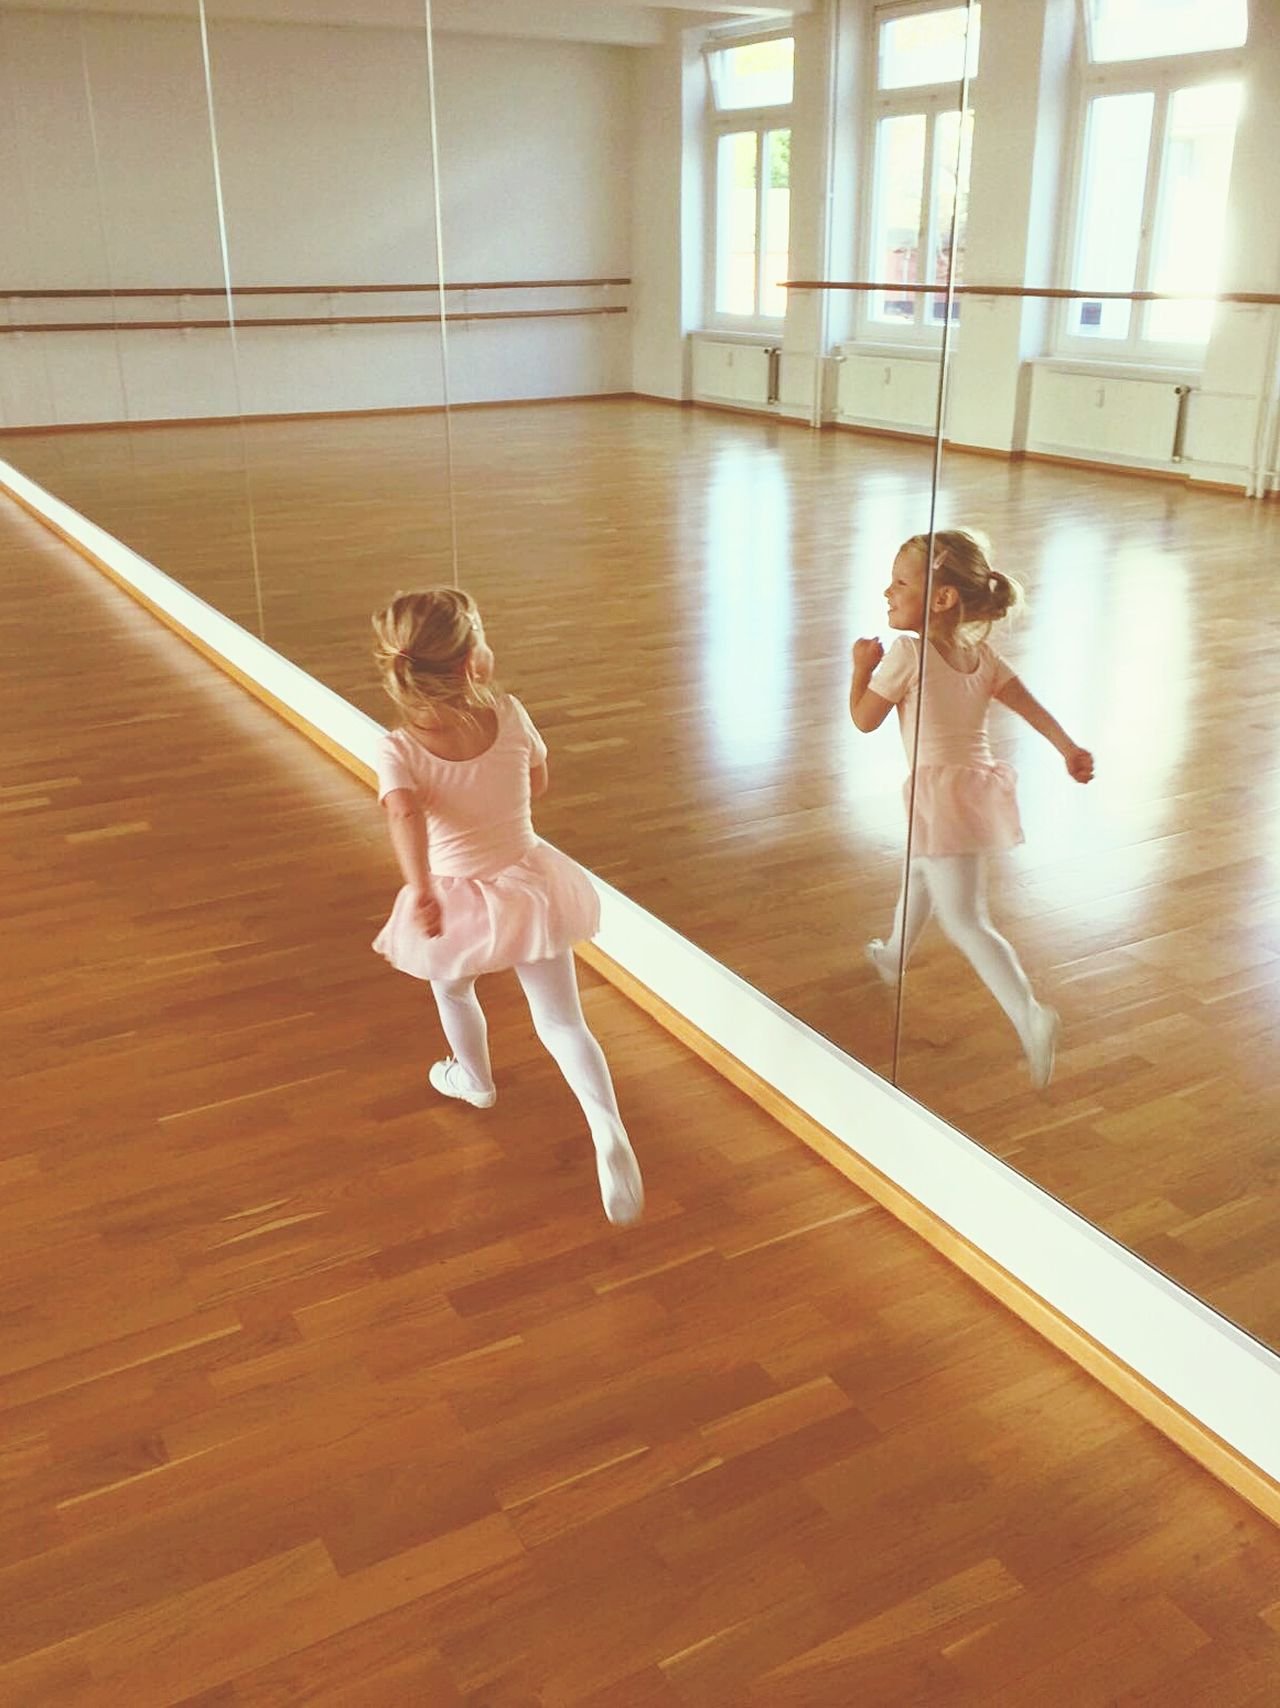 Ballarina Kid Toddler  Running Dancing Ballett Girl Sports Gym Mirror Watching Fun Dress Energy School Learning Lesson